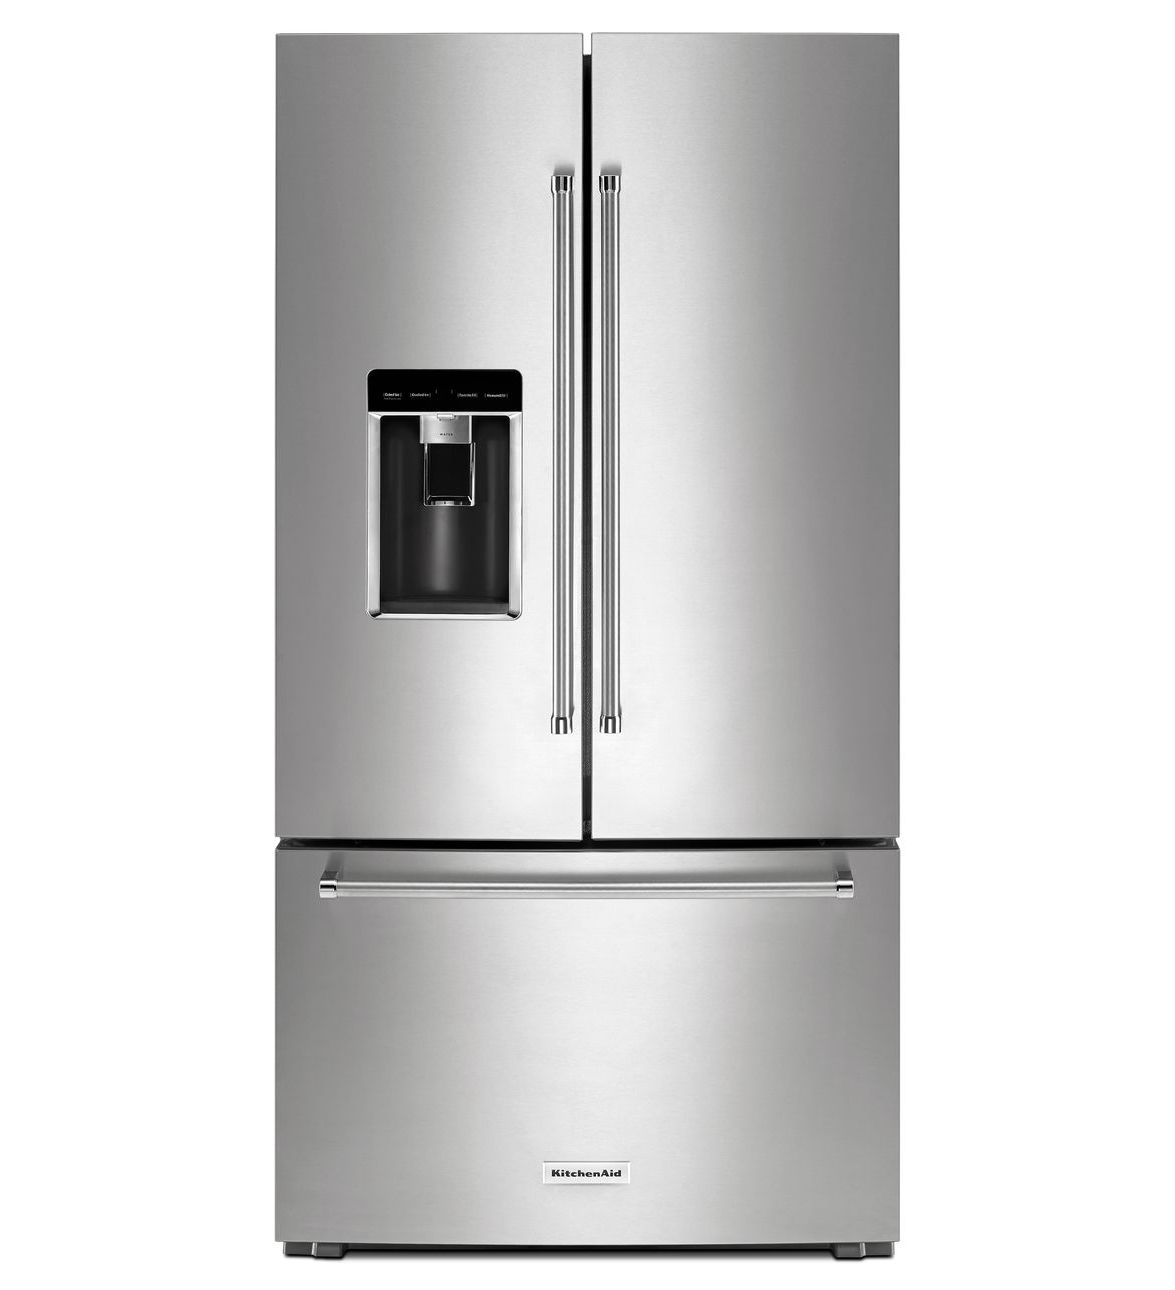 Uncategorized Home Hardware Kitchen Appliances dishwasher with wellington home hardware appliances